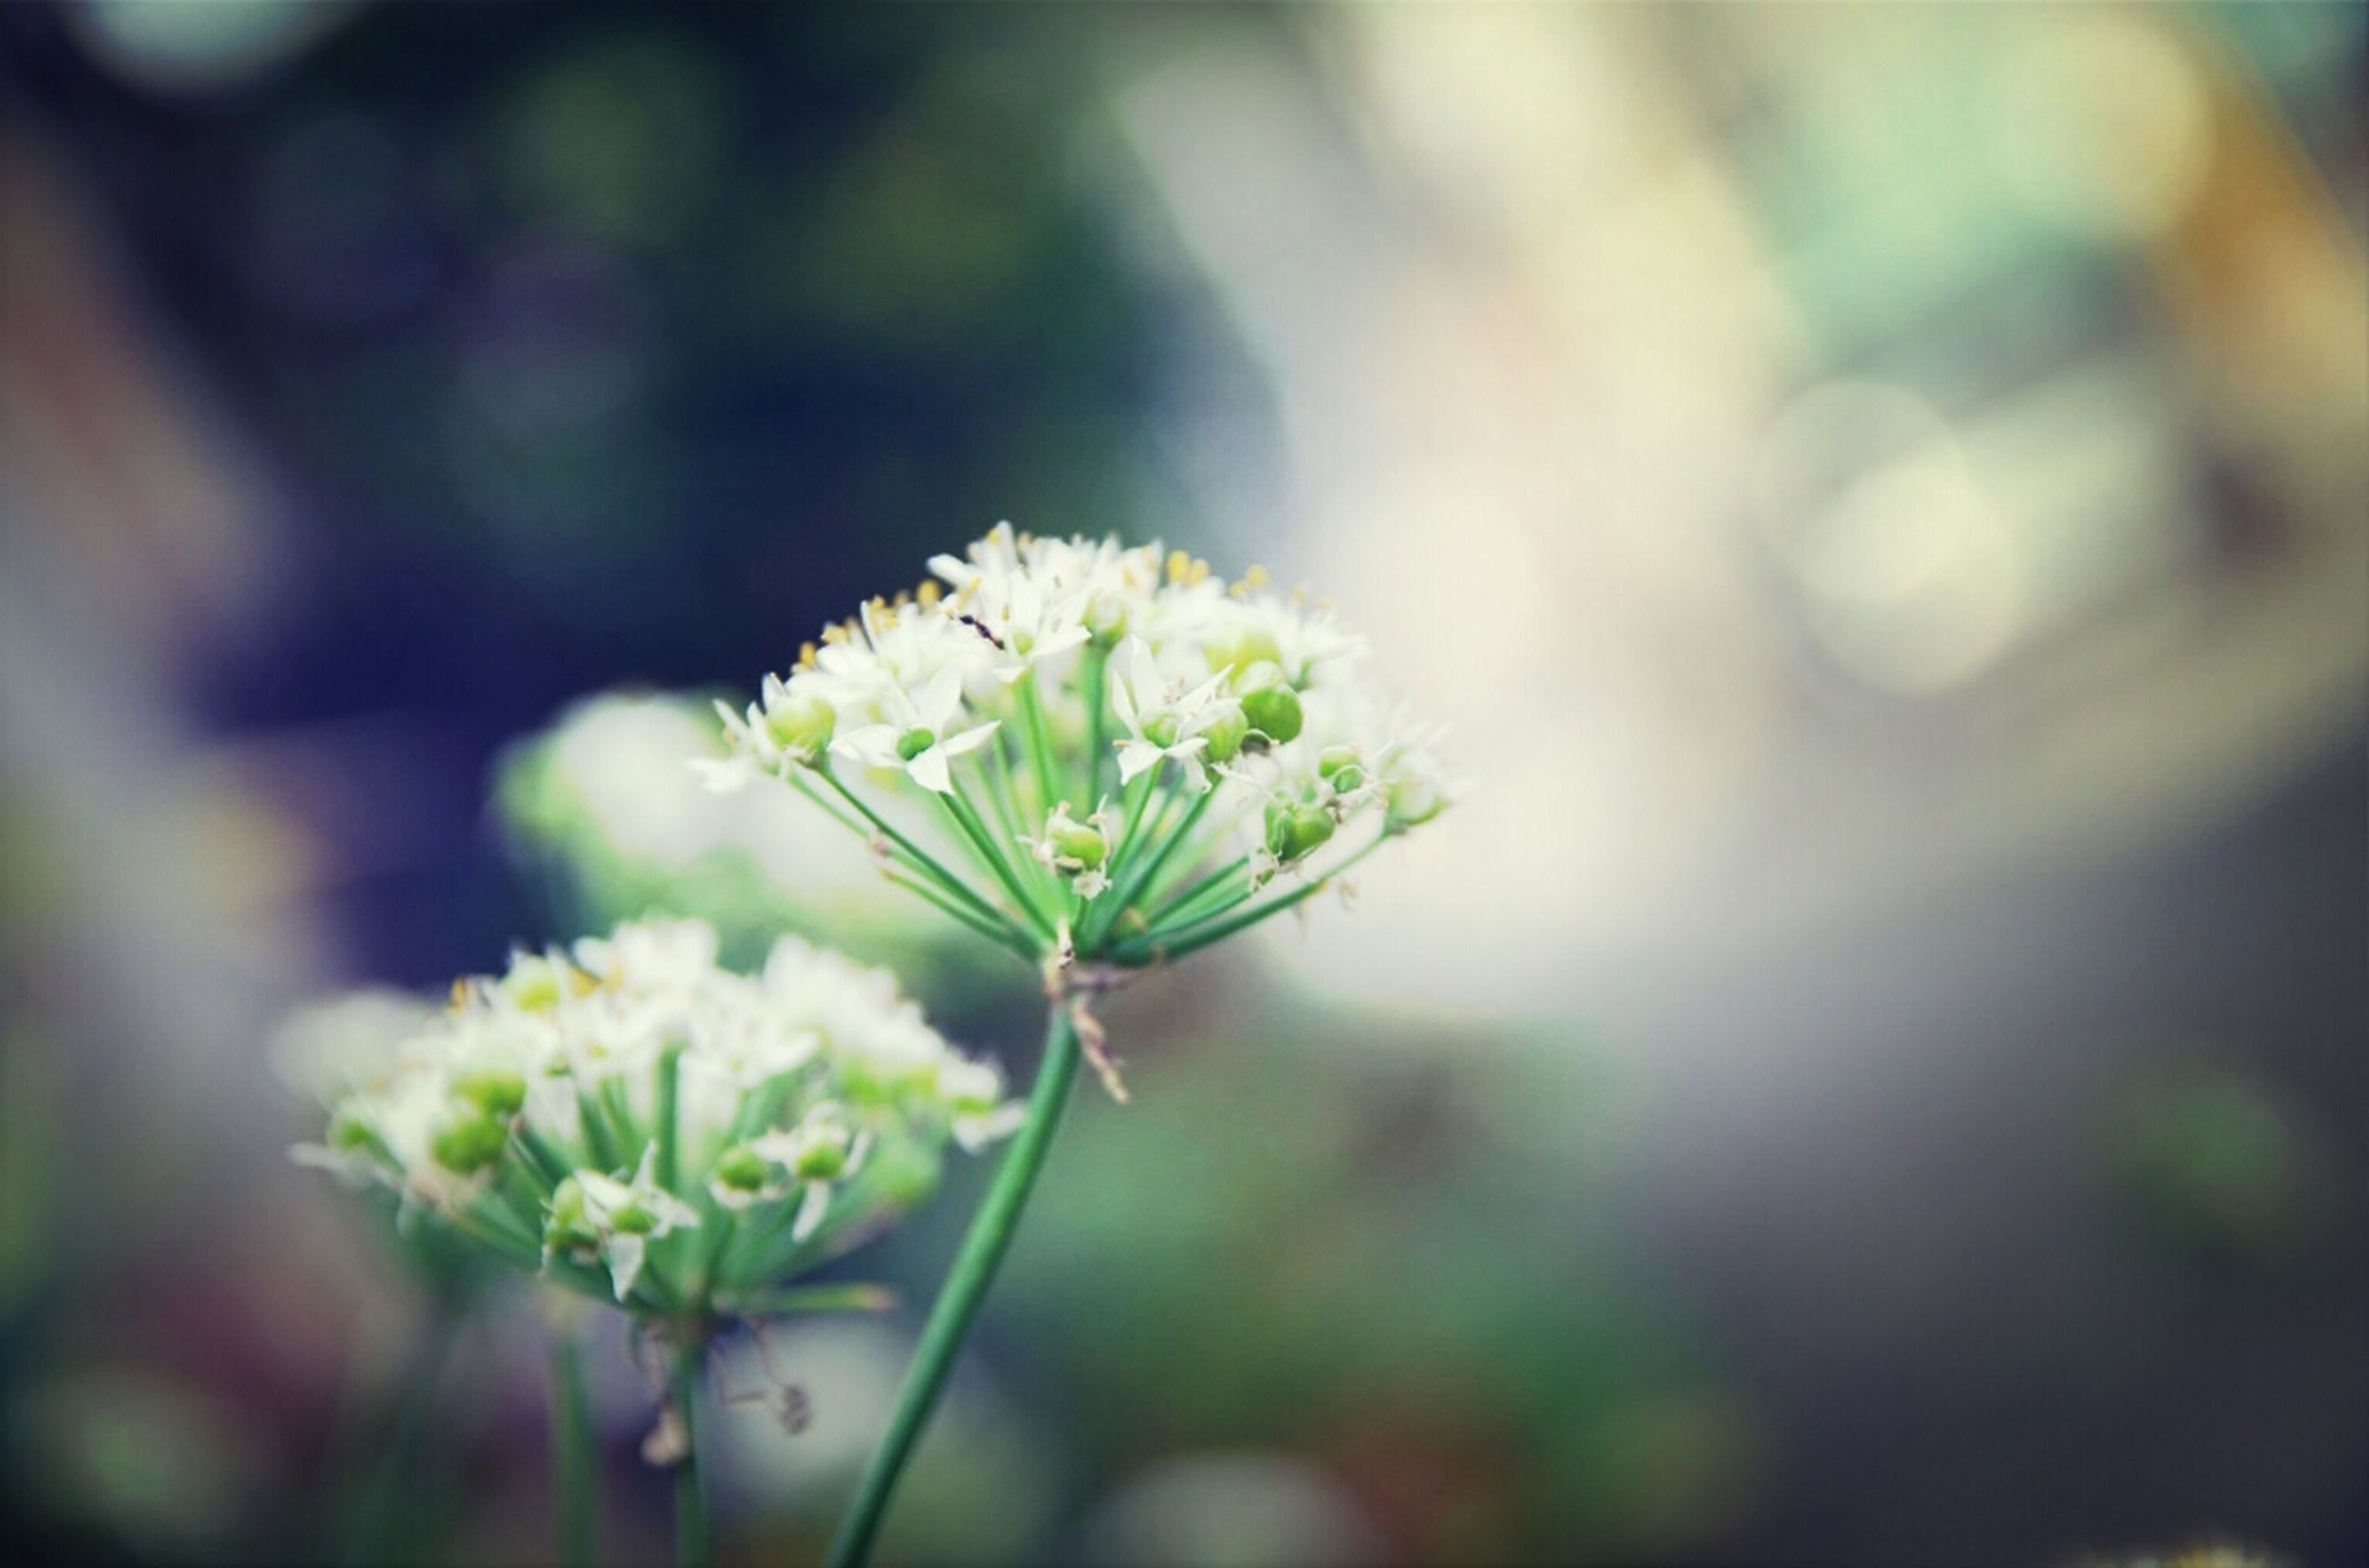 flower, growth, freshness, focus on foreground, fragility, close-up, plant, nature, beauty in nature, bud, white color, stem, petal, selective focus, leaf, flower head, new life, blooming, green color, beginnings